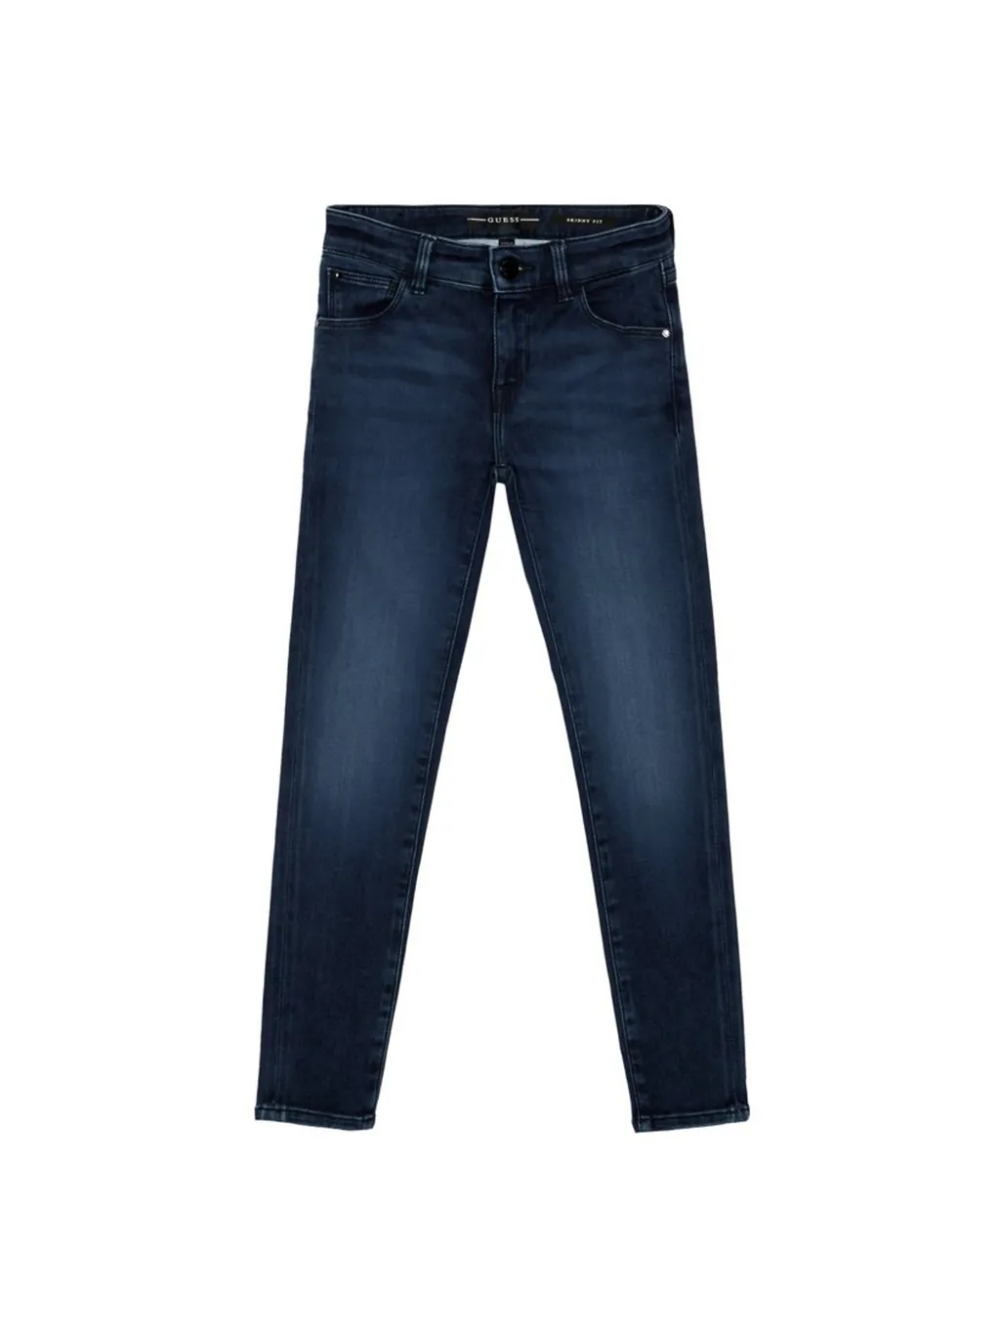 DENIM SKINNY pants extra warm